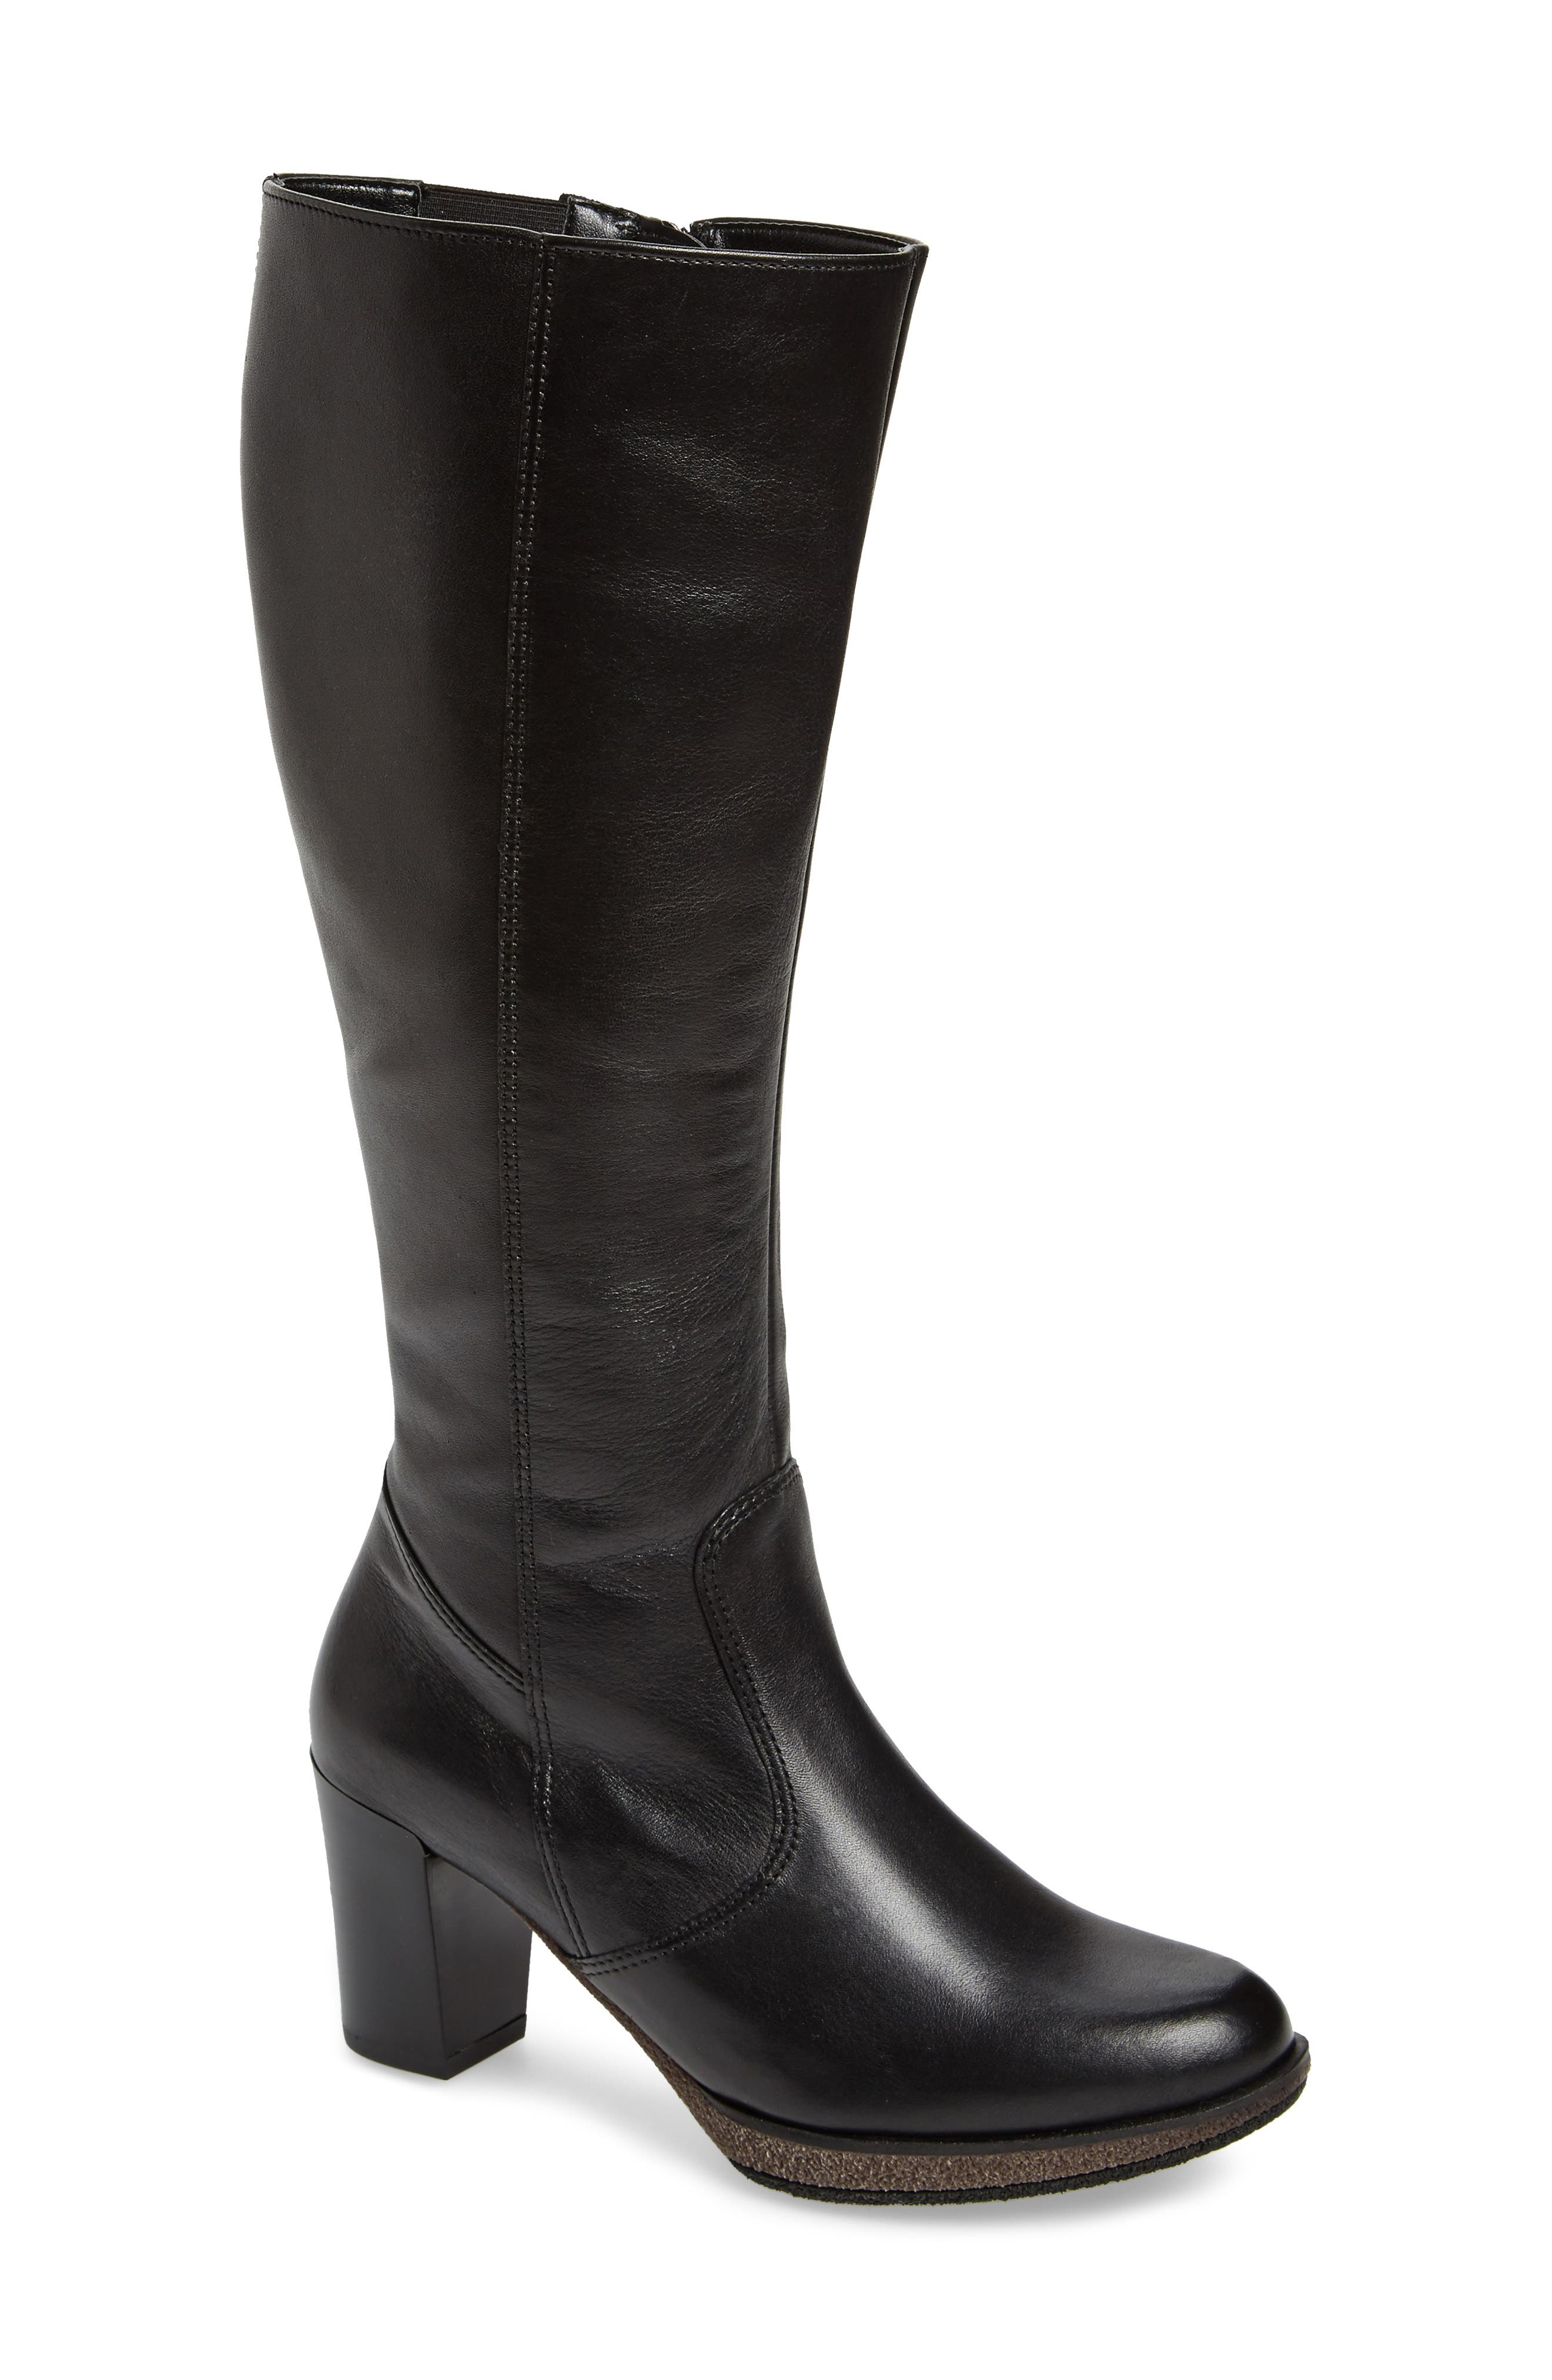 Bexley Knee High Boot,                         Main,                         color, Black Leather